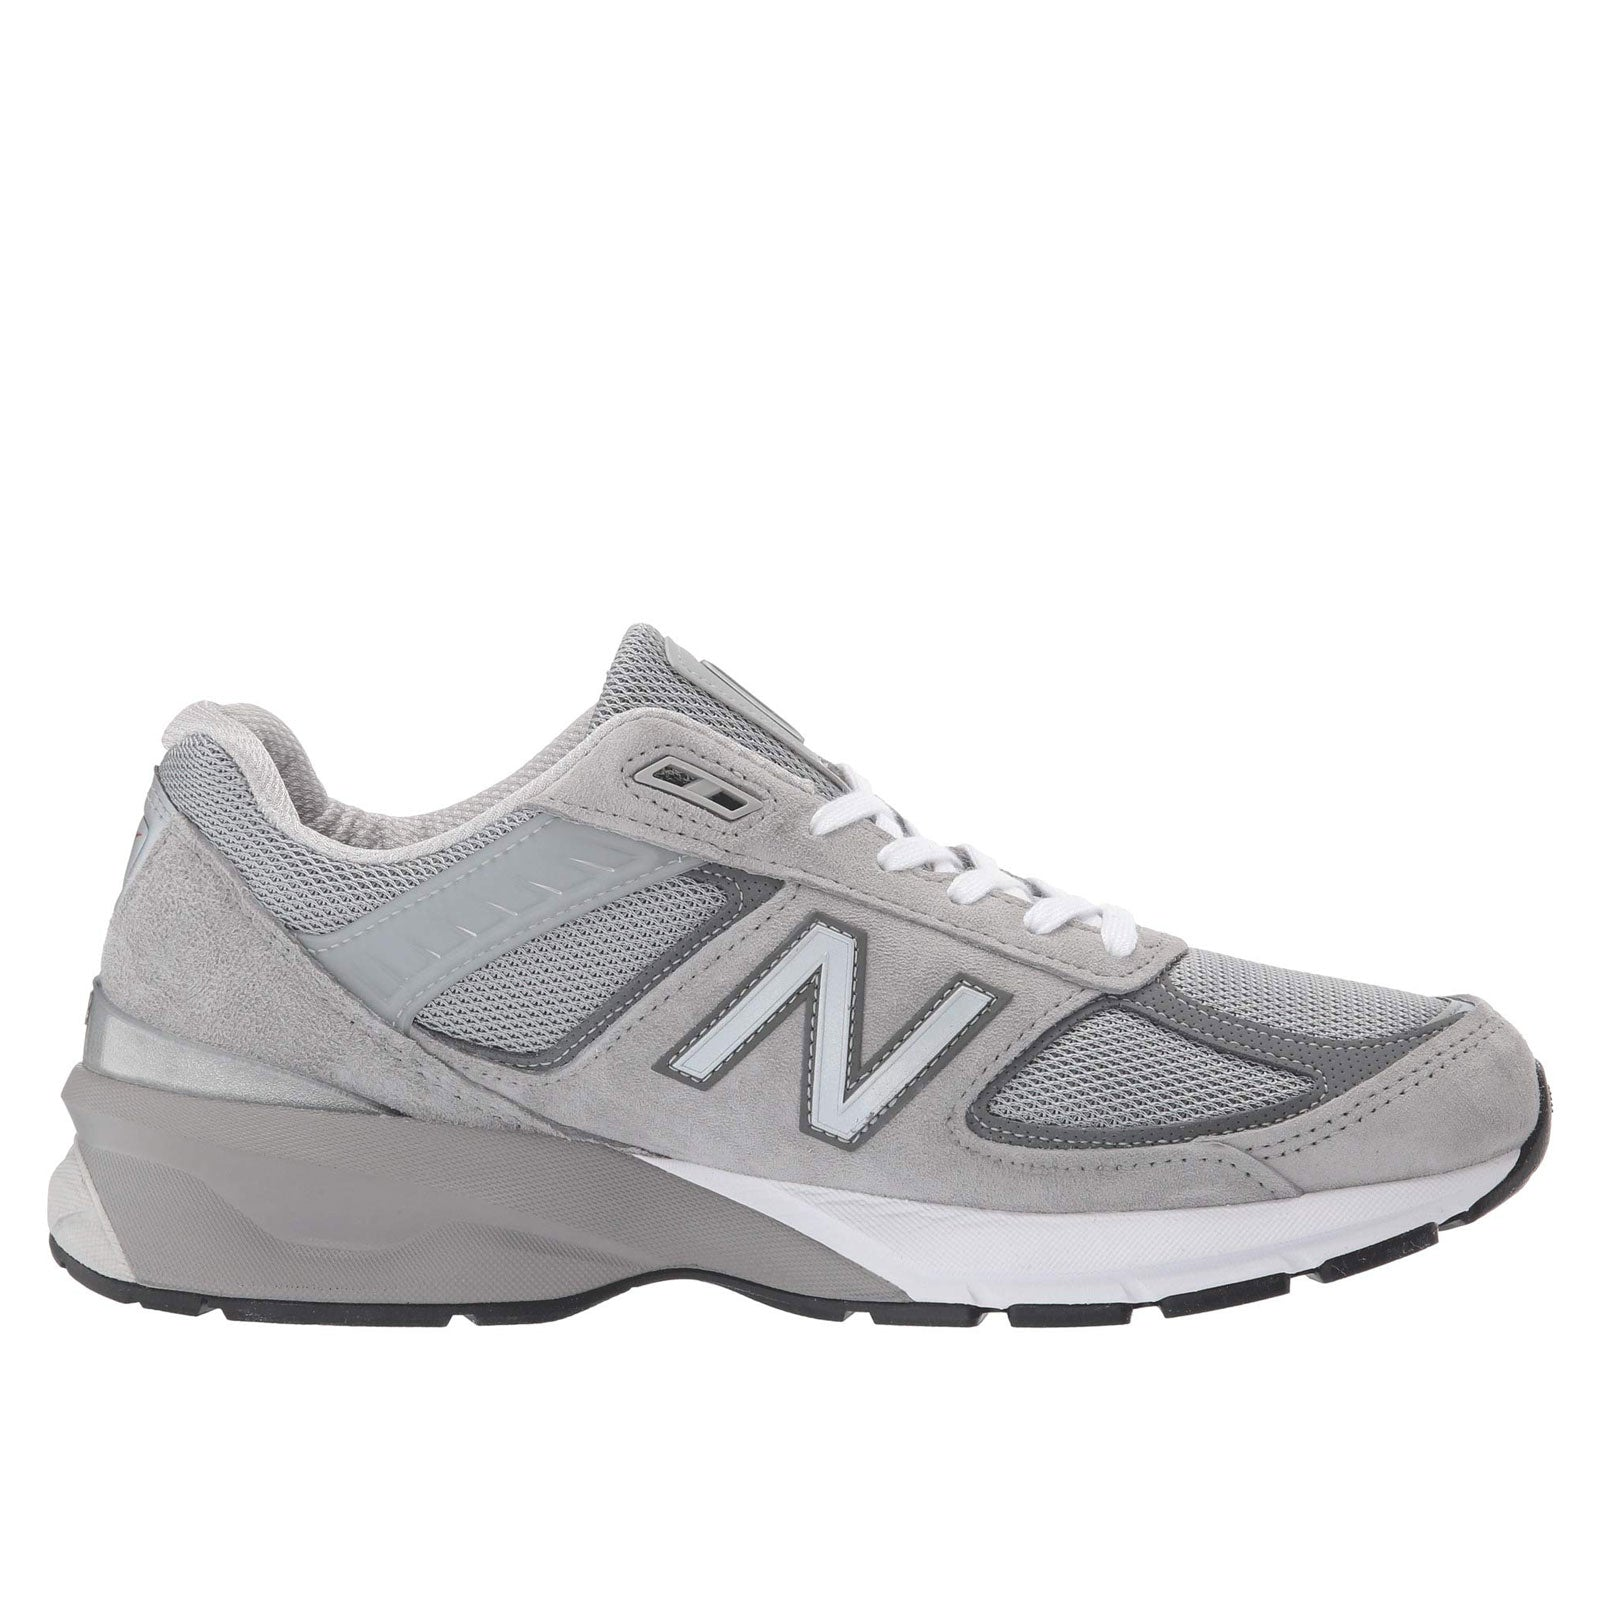 21aefccd8c New Balance Running Course 990v5